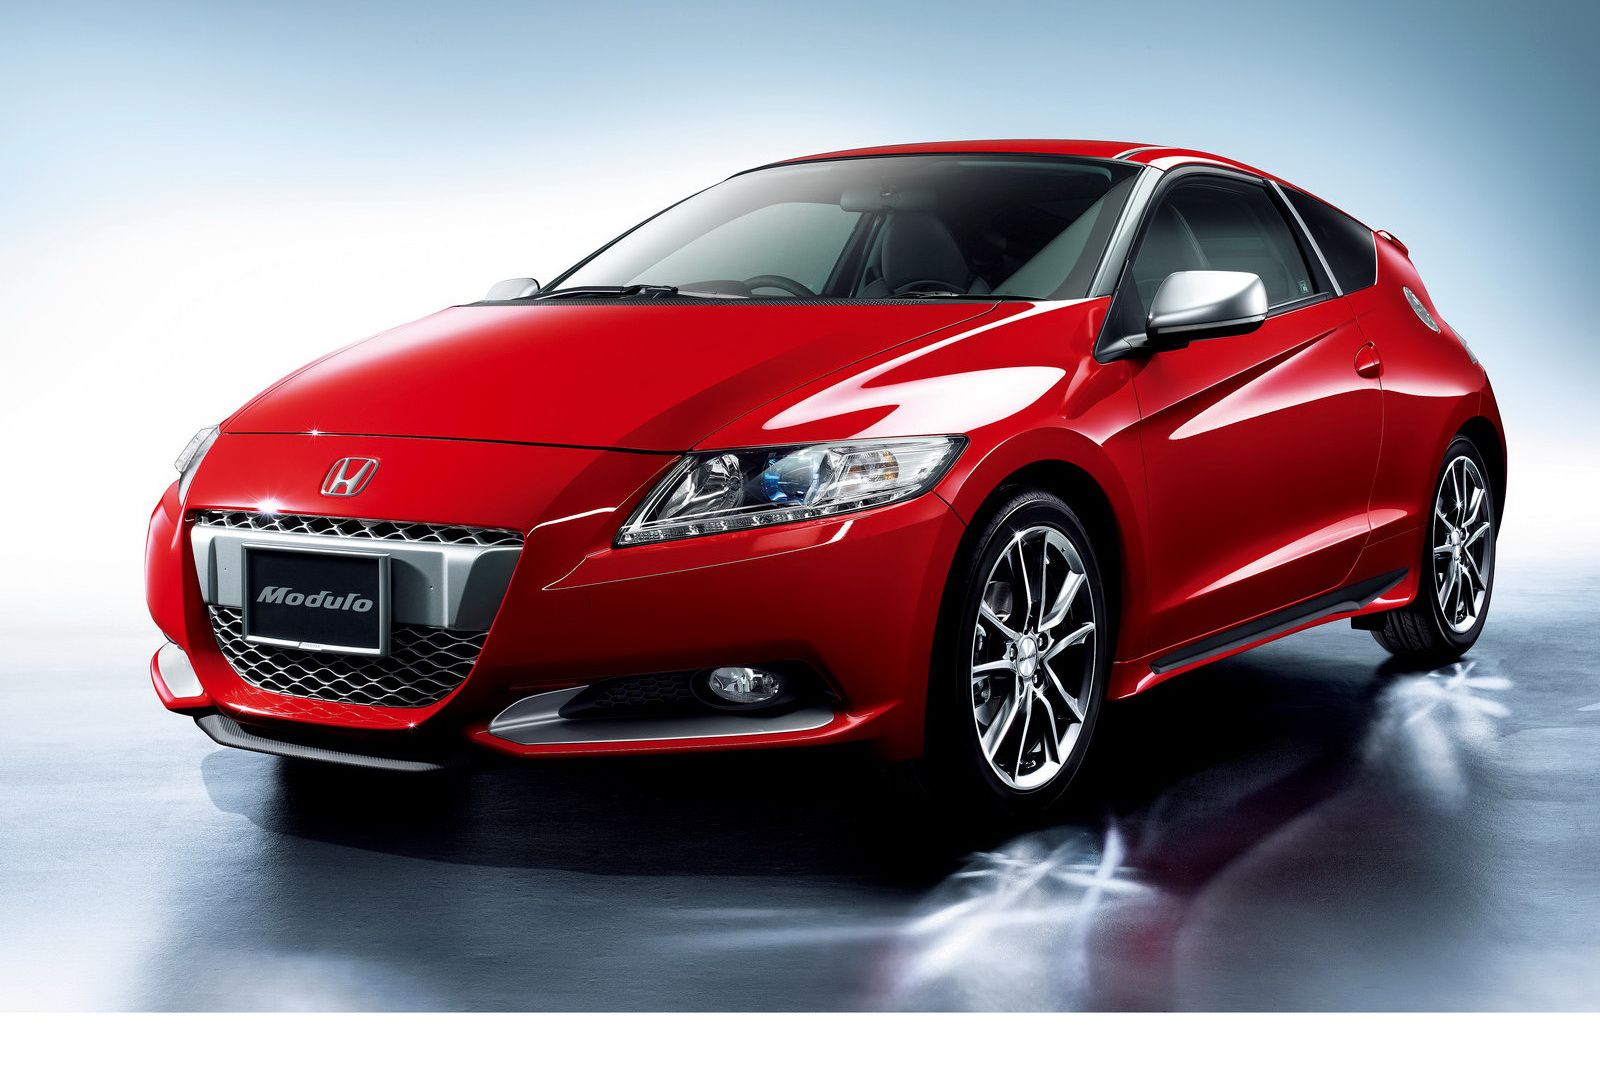 World Car Wallpapers: 2011 Honda cr-z